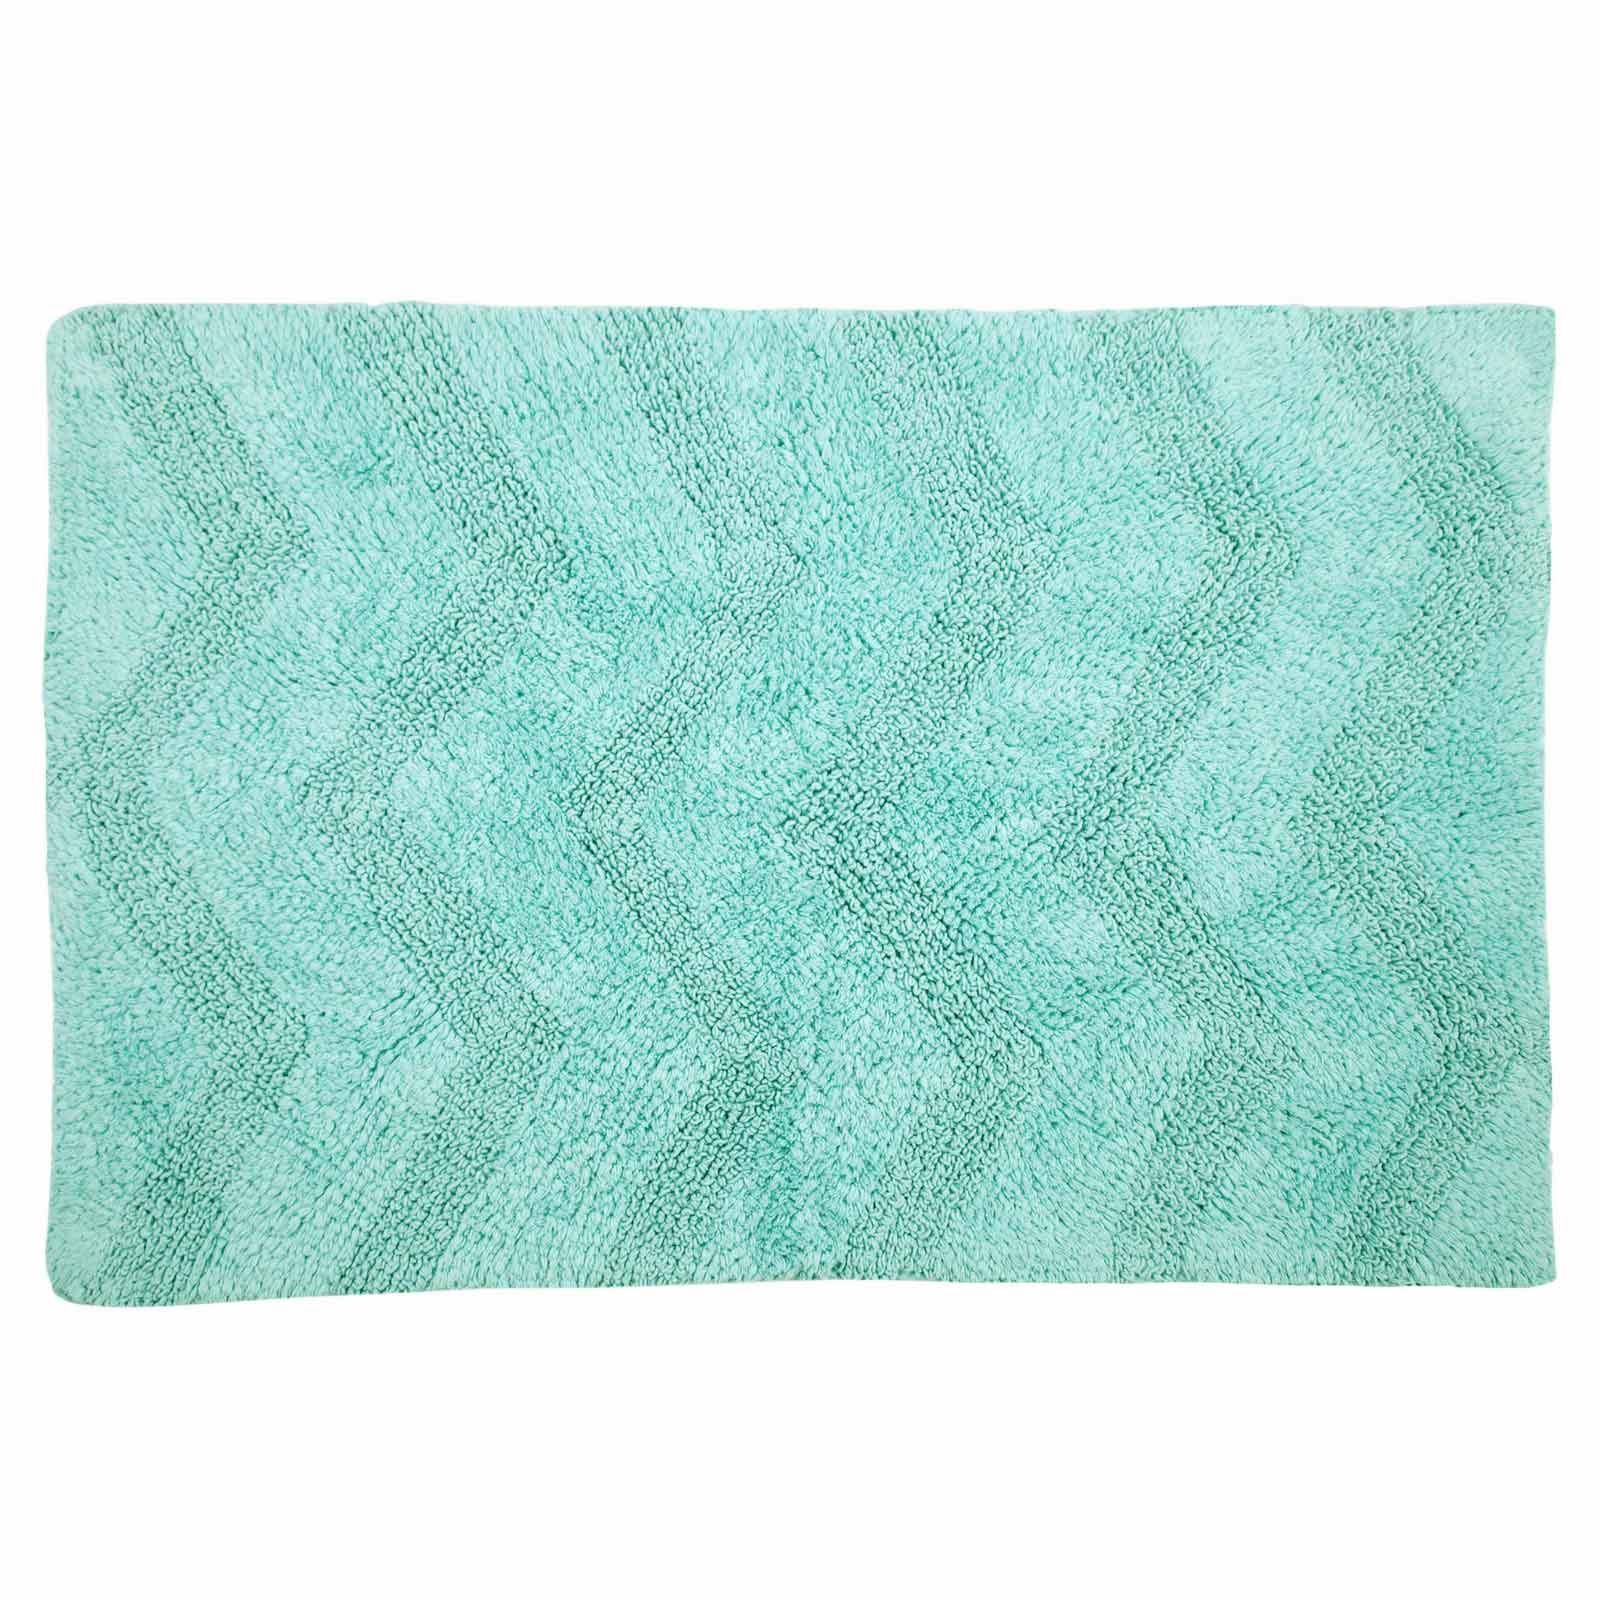 Chevron 100 Cotton Modern Bath Mat Luxury Shower Mats